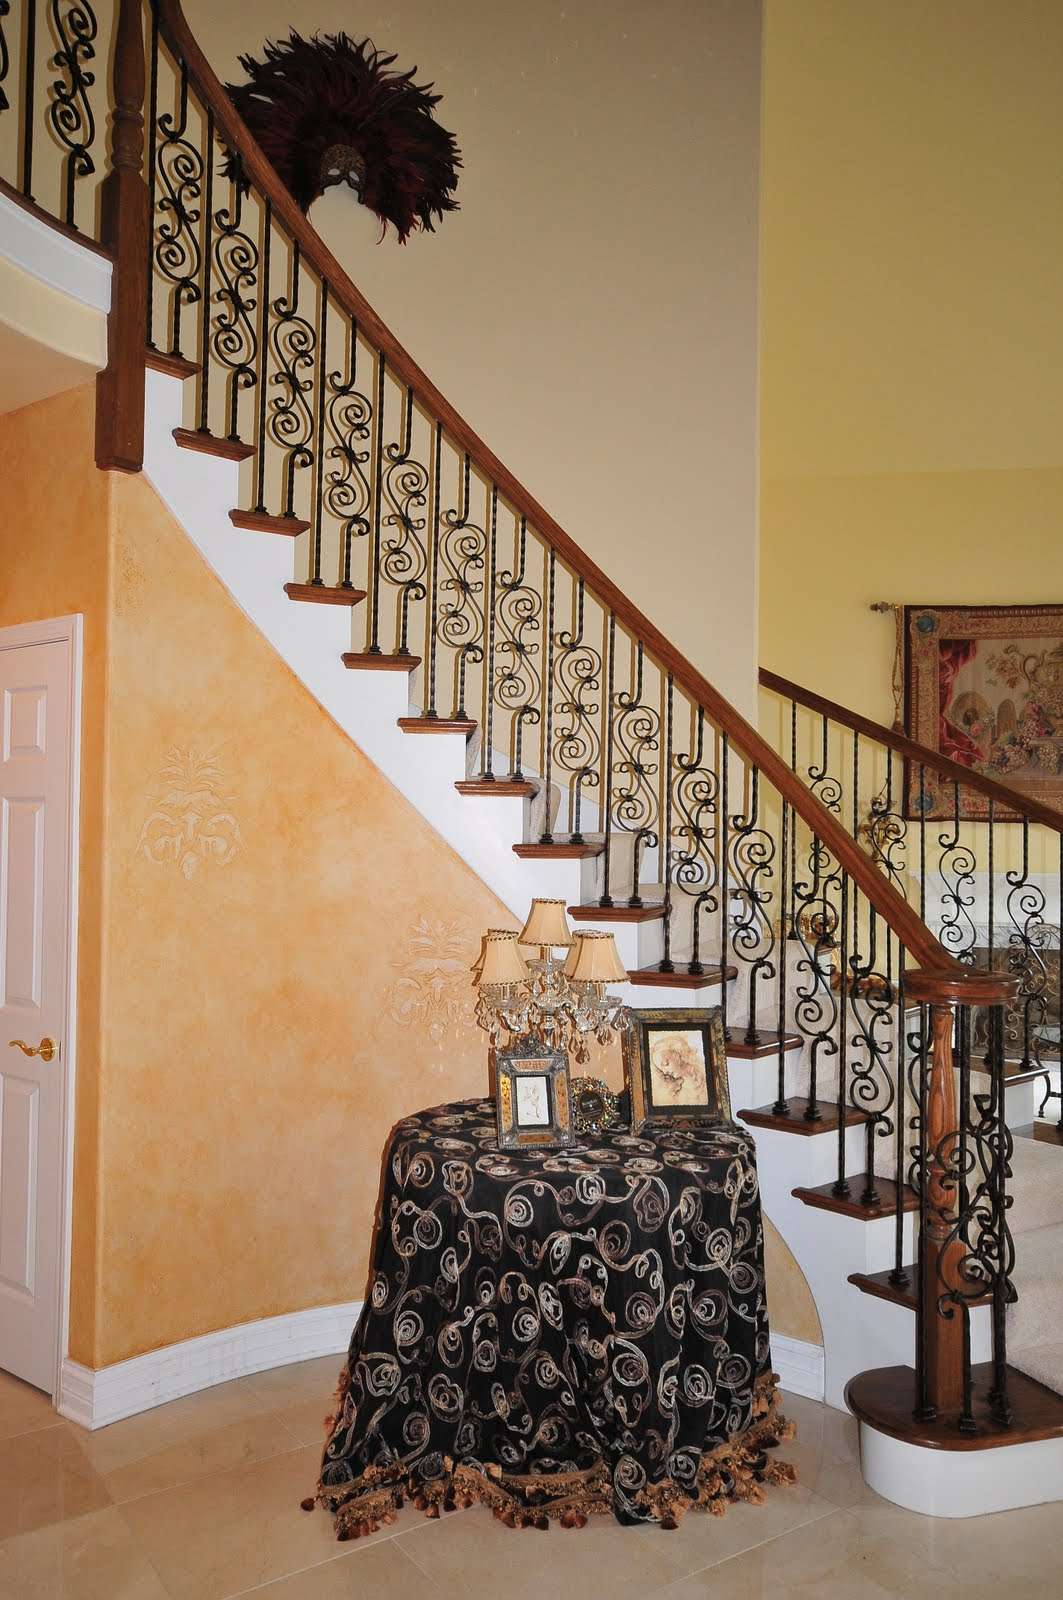 Naperville Stairs And Railings With Iron Balusters | Iron Railings For Steps